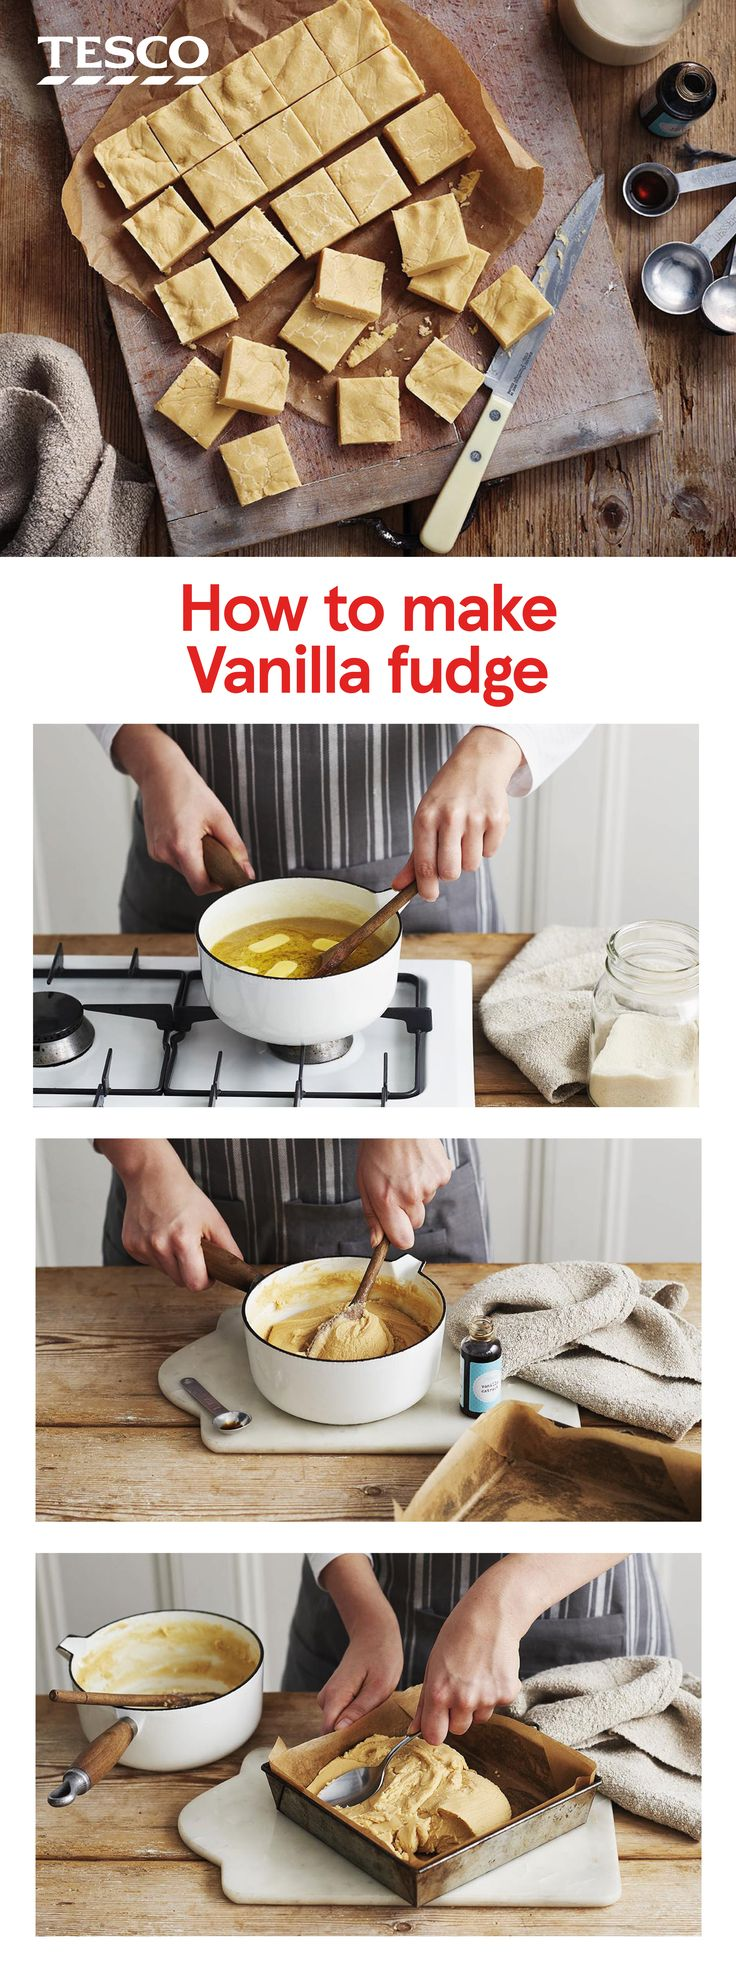 Follow our simple step-by-step fudge recipe for perfect homemade fudge every time. This sugary, sweet treat can be made at home with just a few ingredients and makes a great edible gift, too. | Tesco